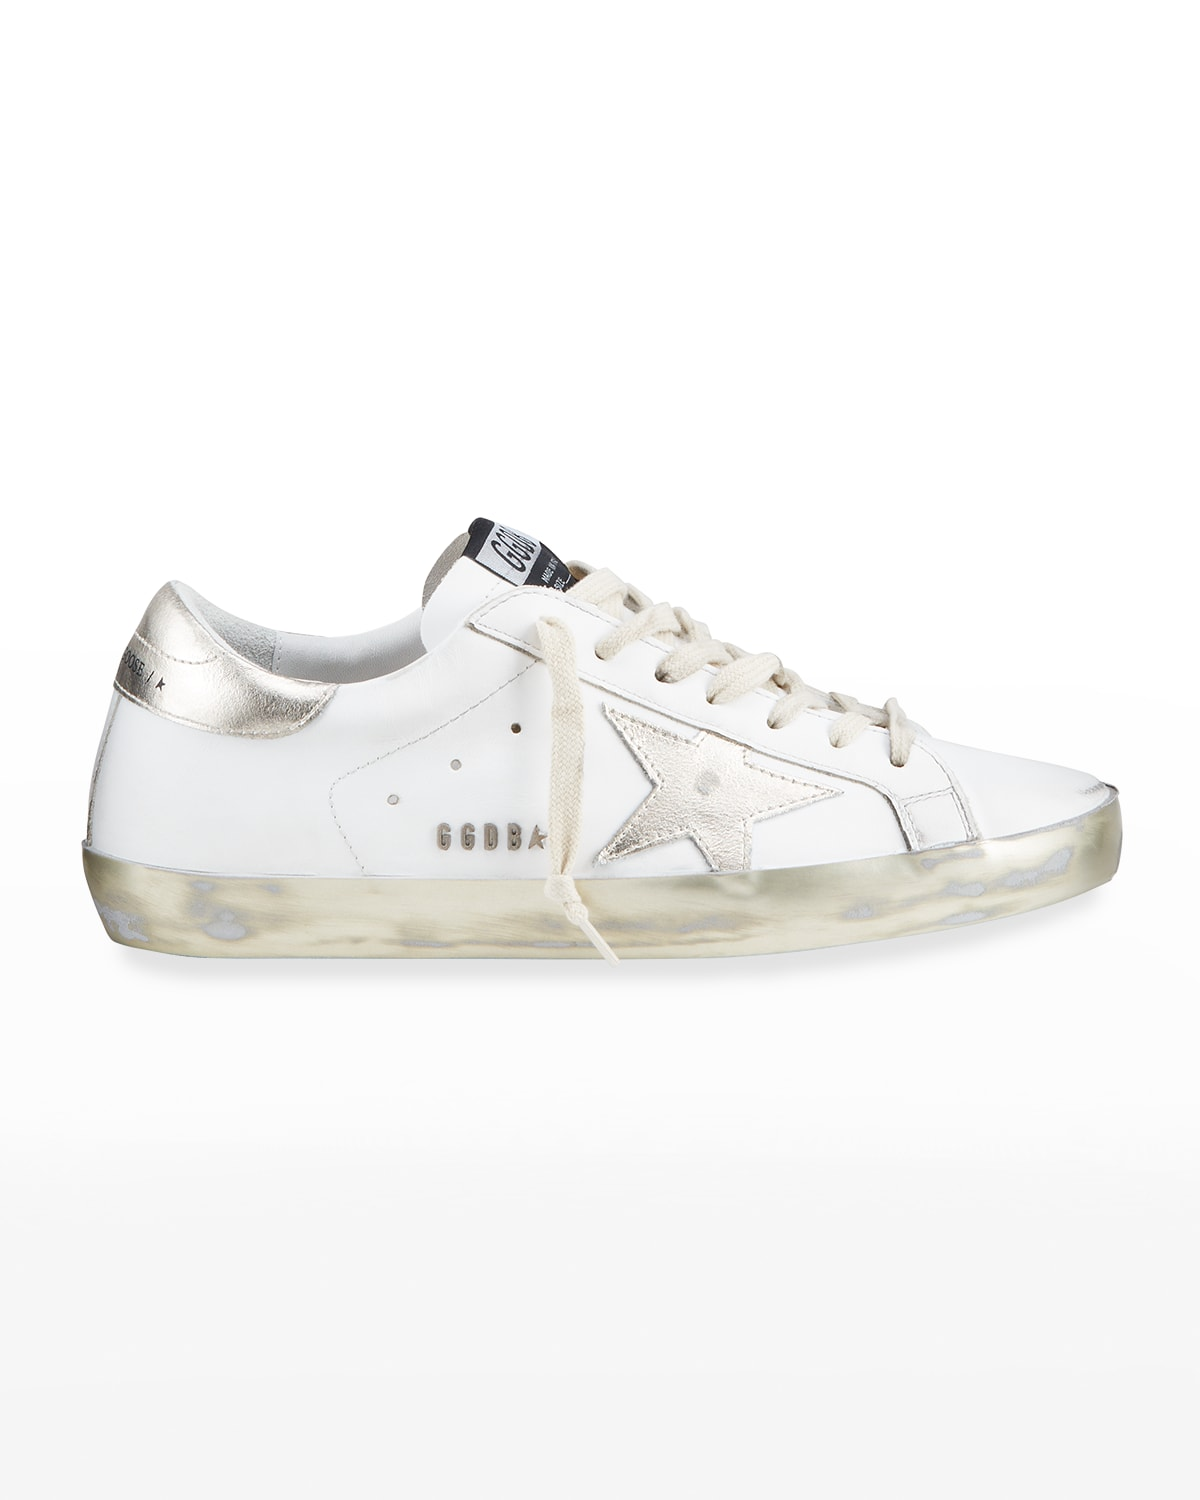 Men's Superstar Laminated Leather Low-Top Sneakers